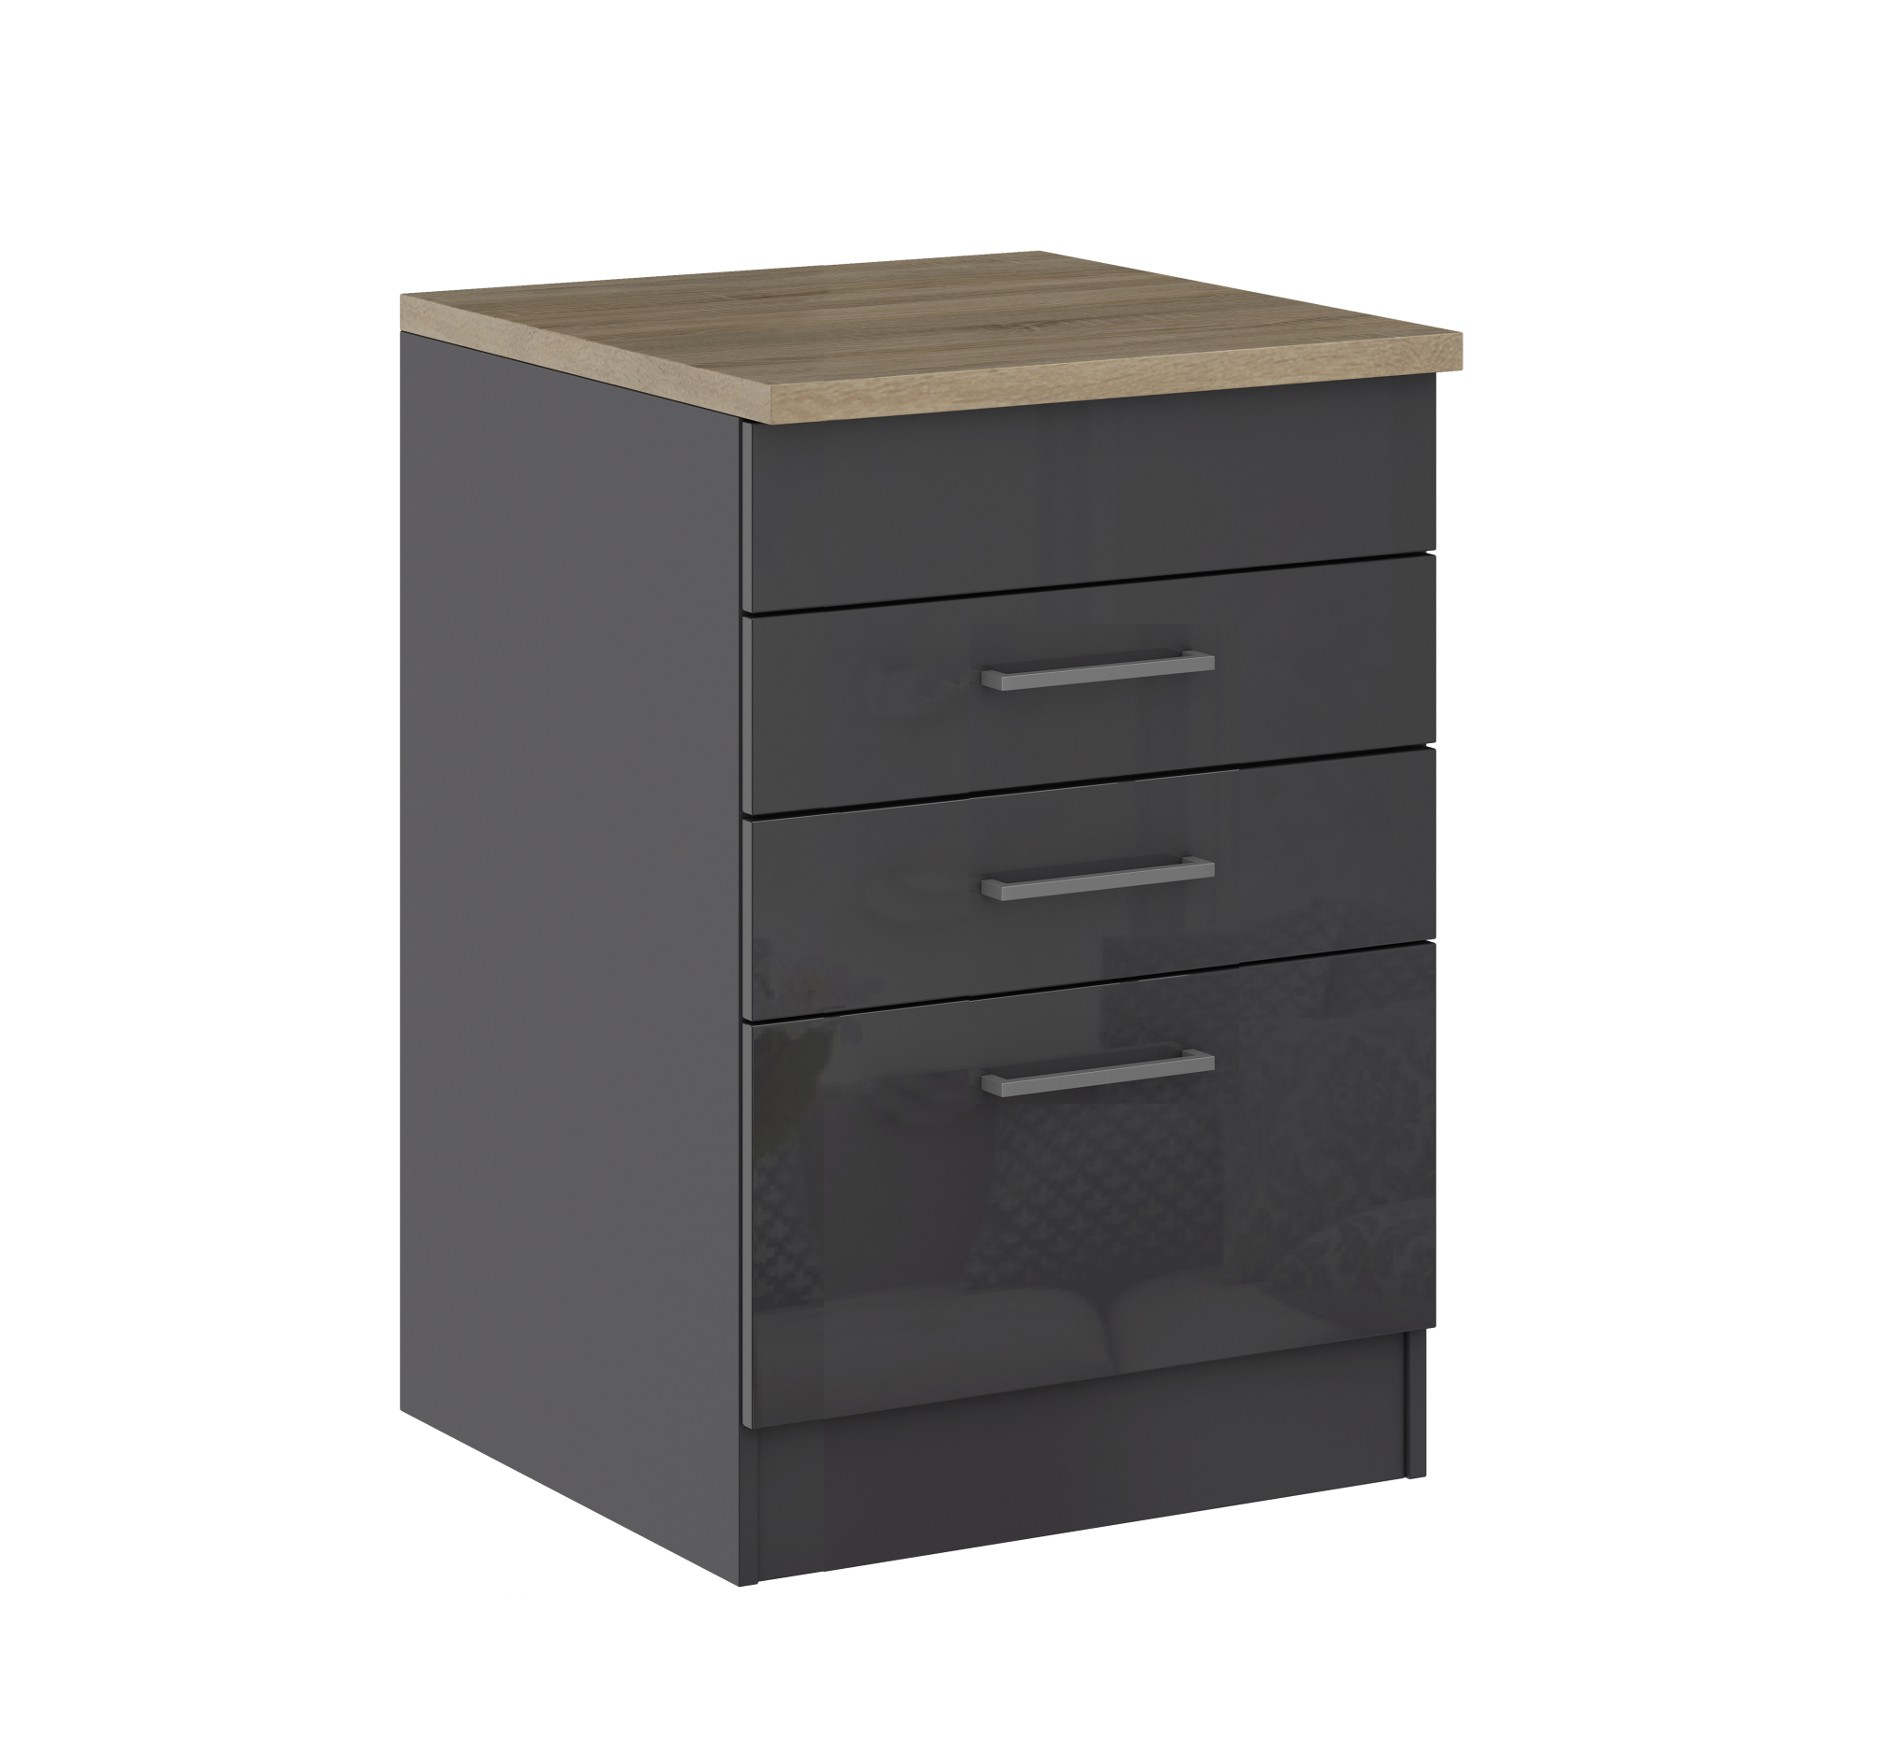 k chenschrank 60 cm breit k chenschrank 60 cm pd51. Black Bedroom Furniture Sets. Home Design Ideas